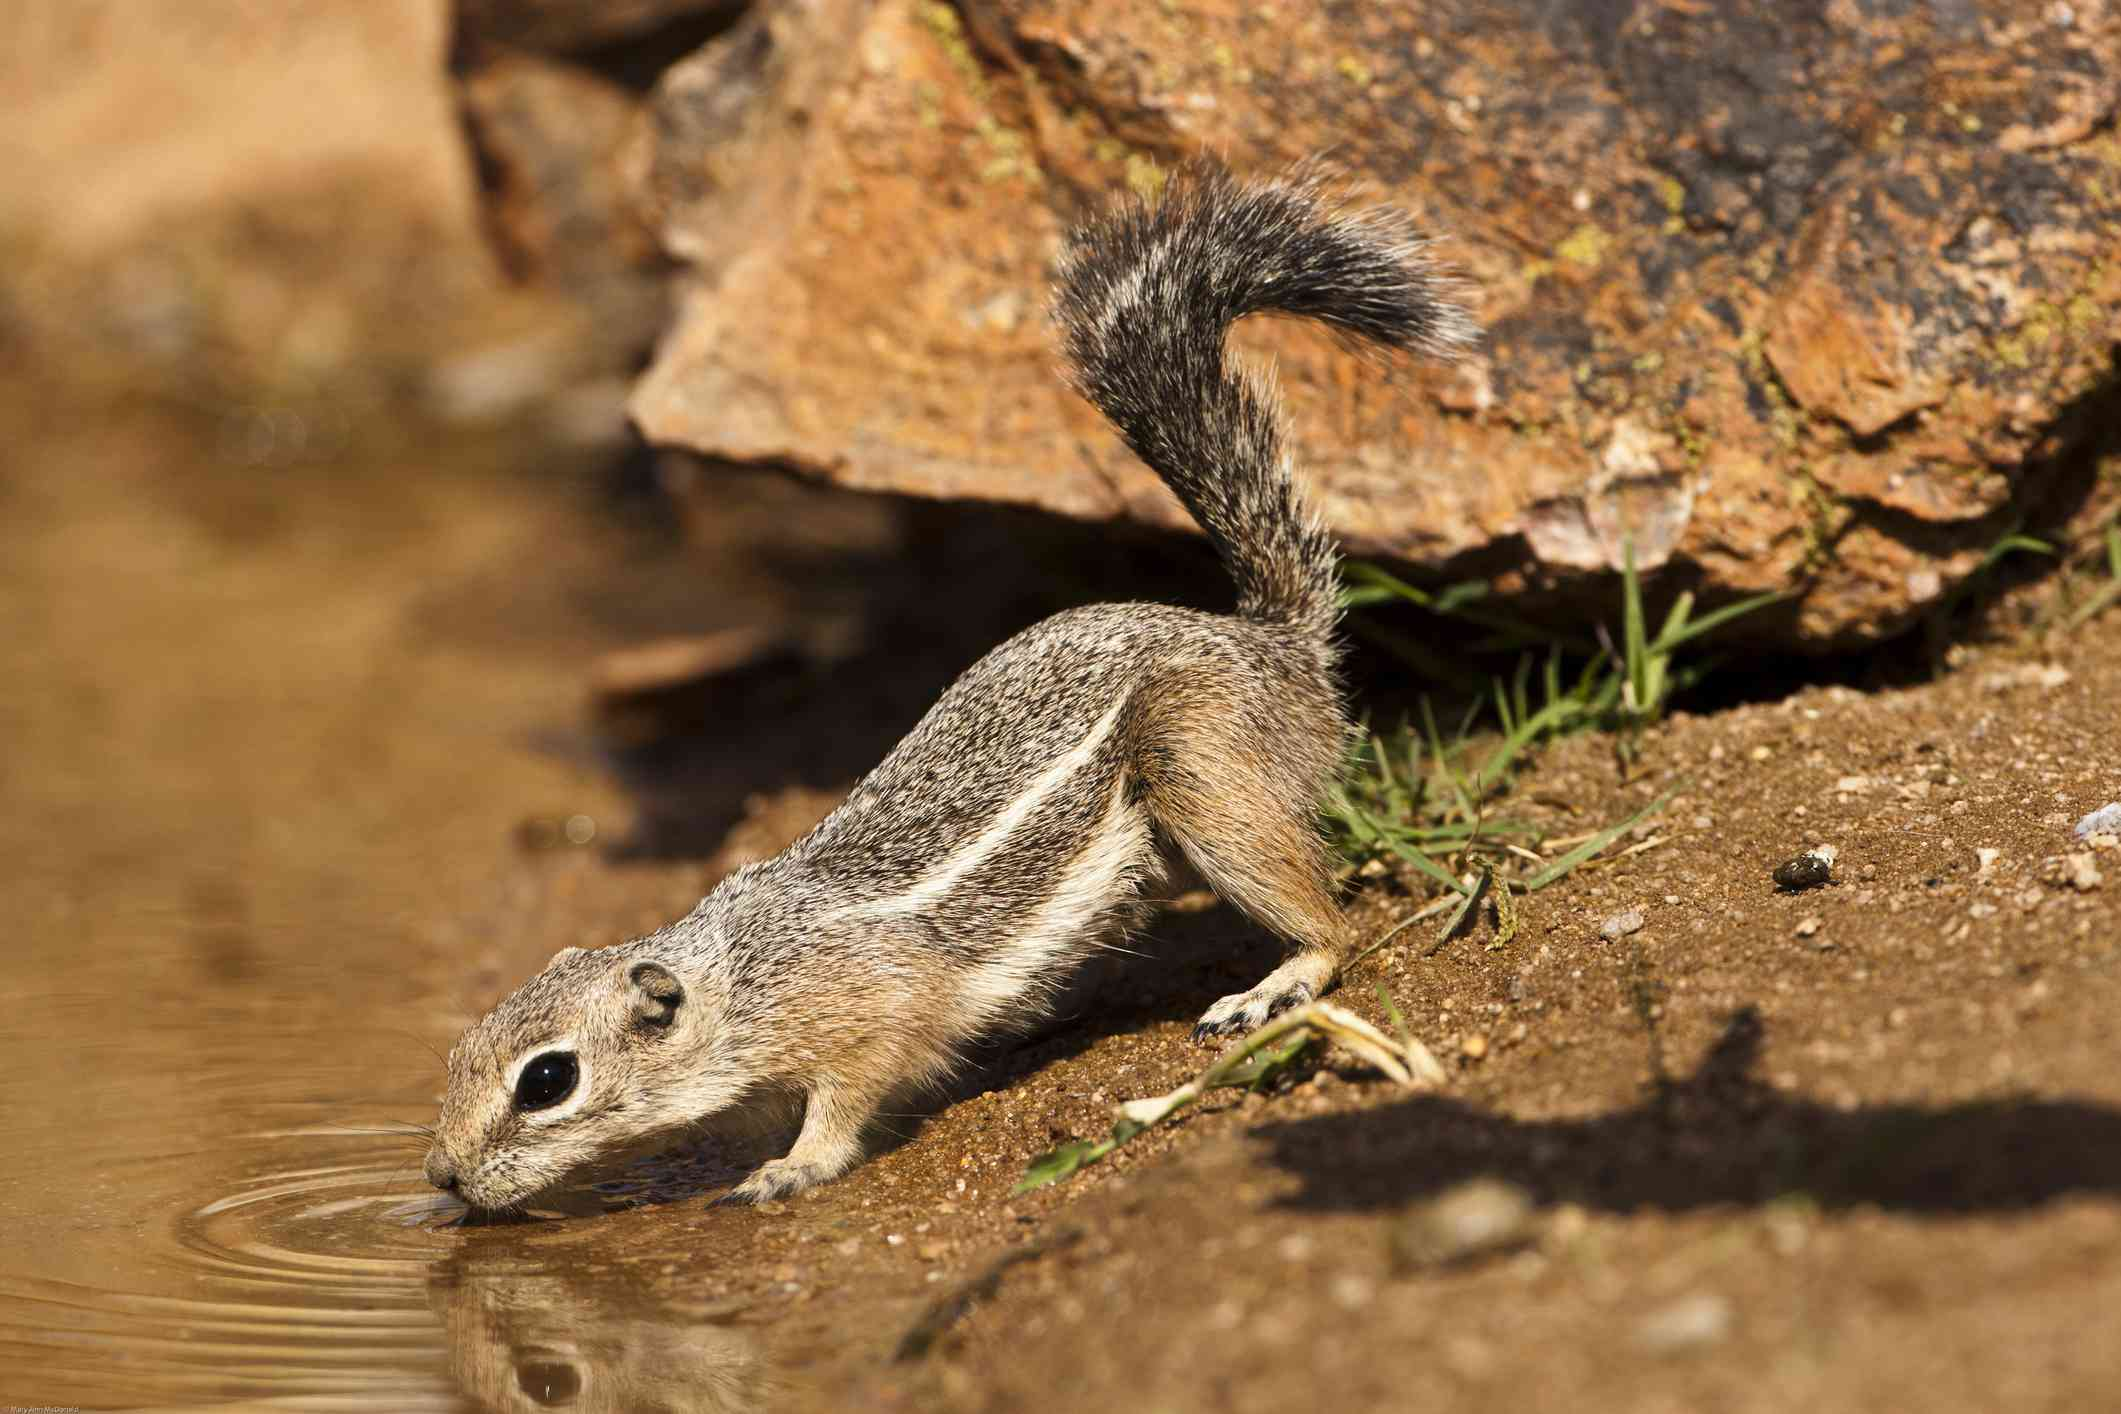 profile of brown antelope squirrel drinking from stream